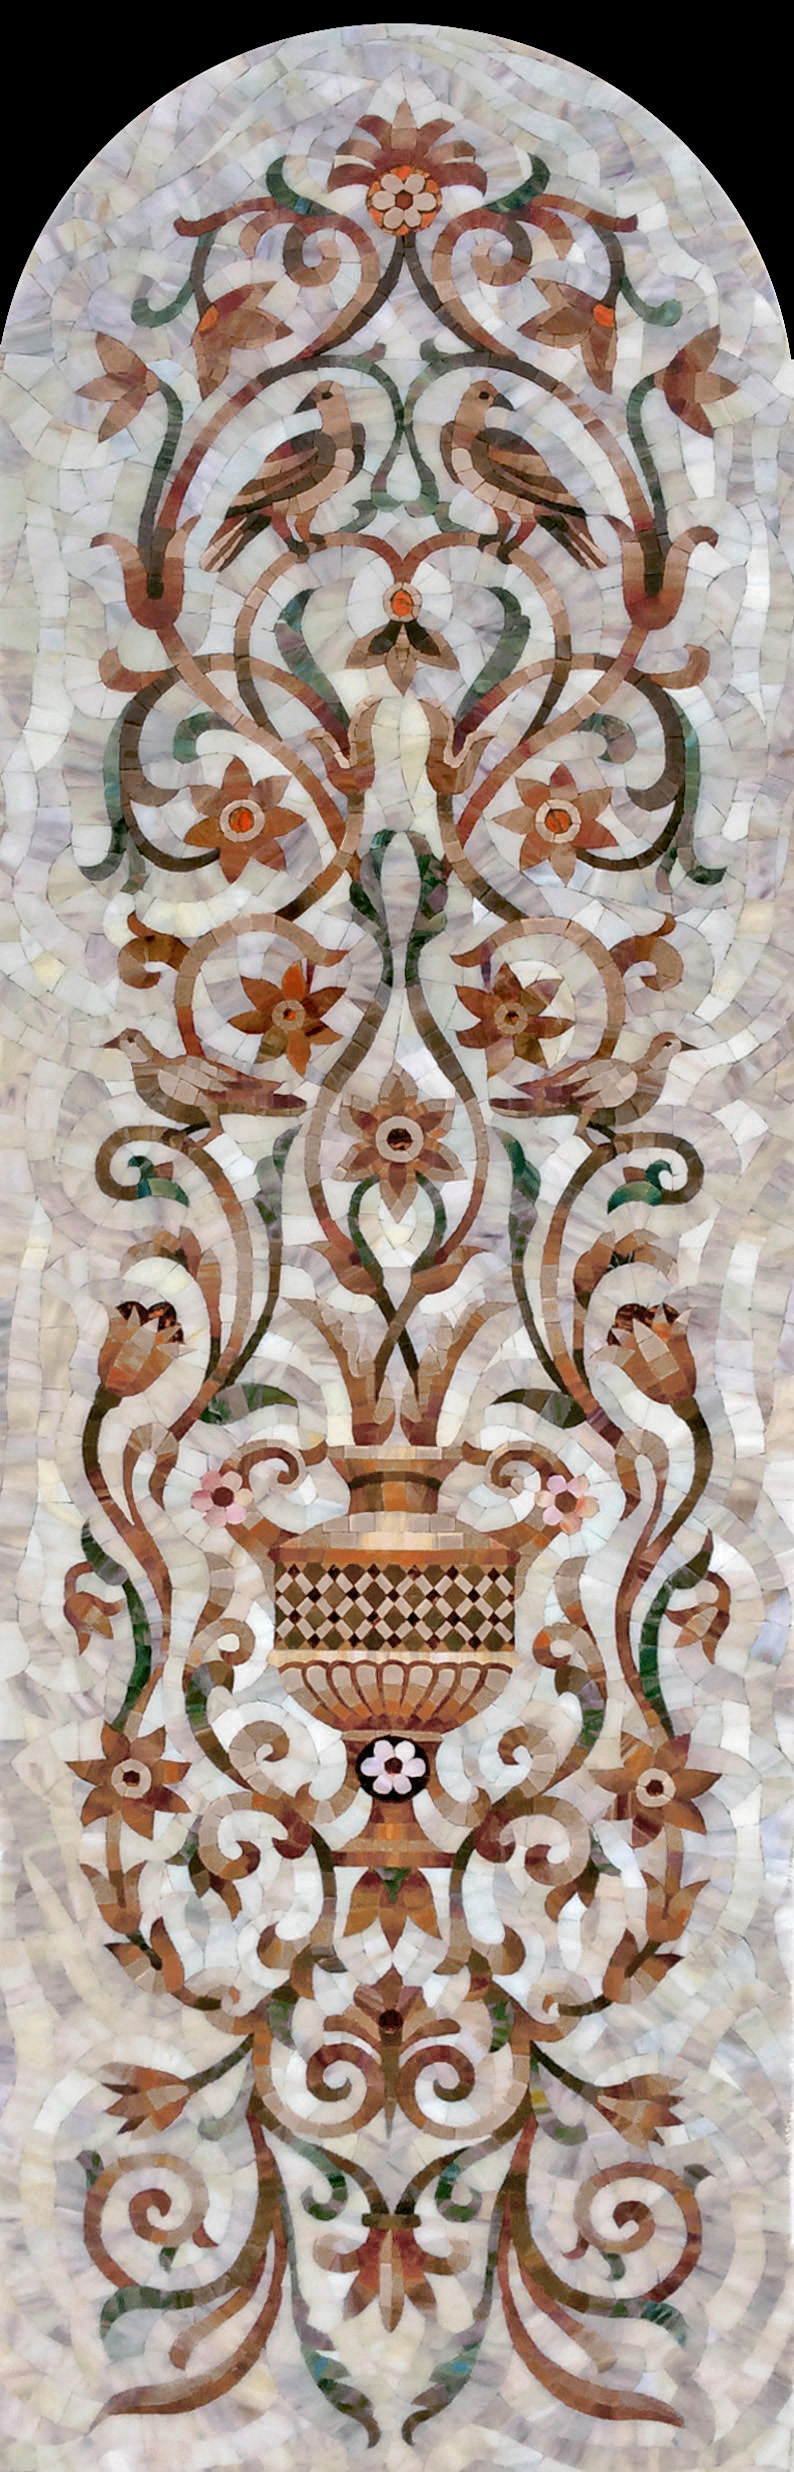 Fragment of a mosaic of Oriental ornament 7